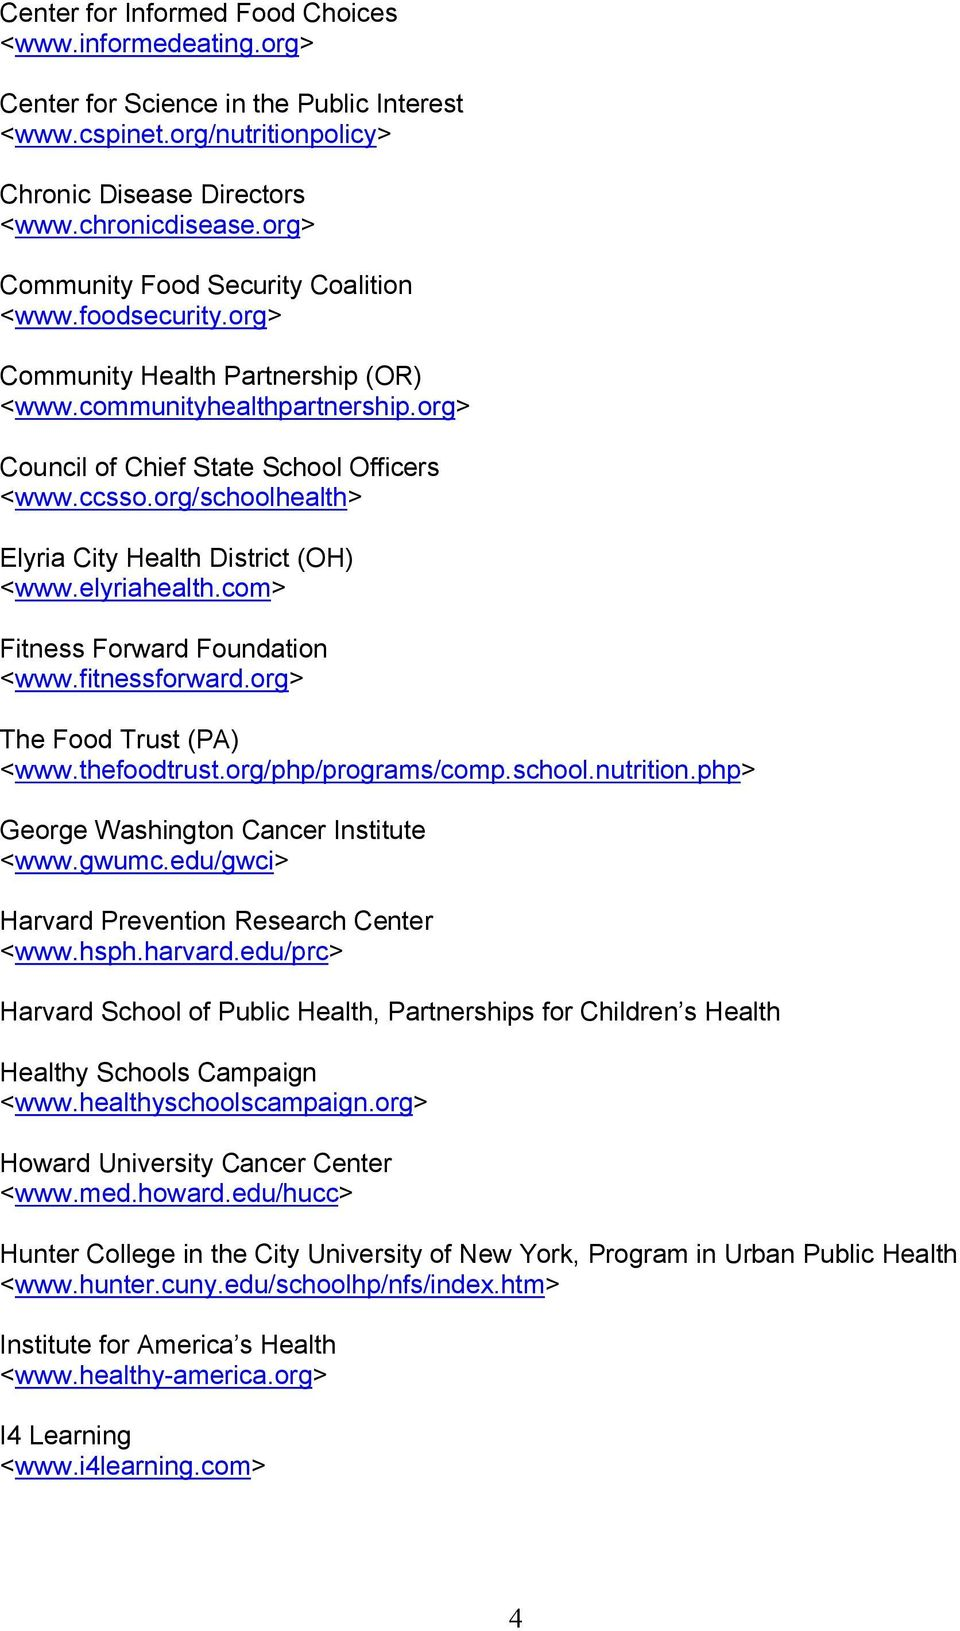 org/schoolhealth> Elyria City Health District (OH) <www.elyriahealth.com> Fitness Forward Foundation <www.fitnessforward.org> The Food Trust (PA) <www.thefoodtrust.org/php/programs/comp.school.nutrition.